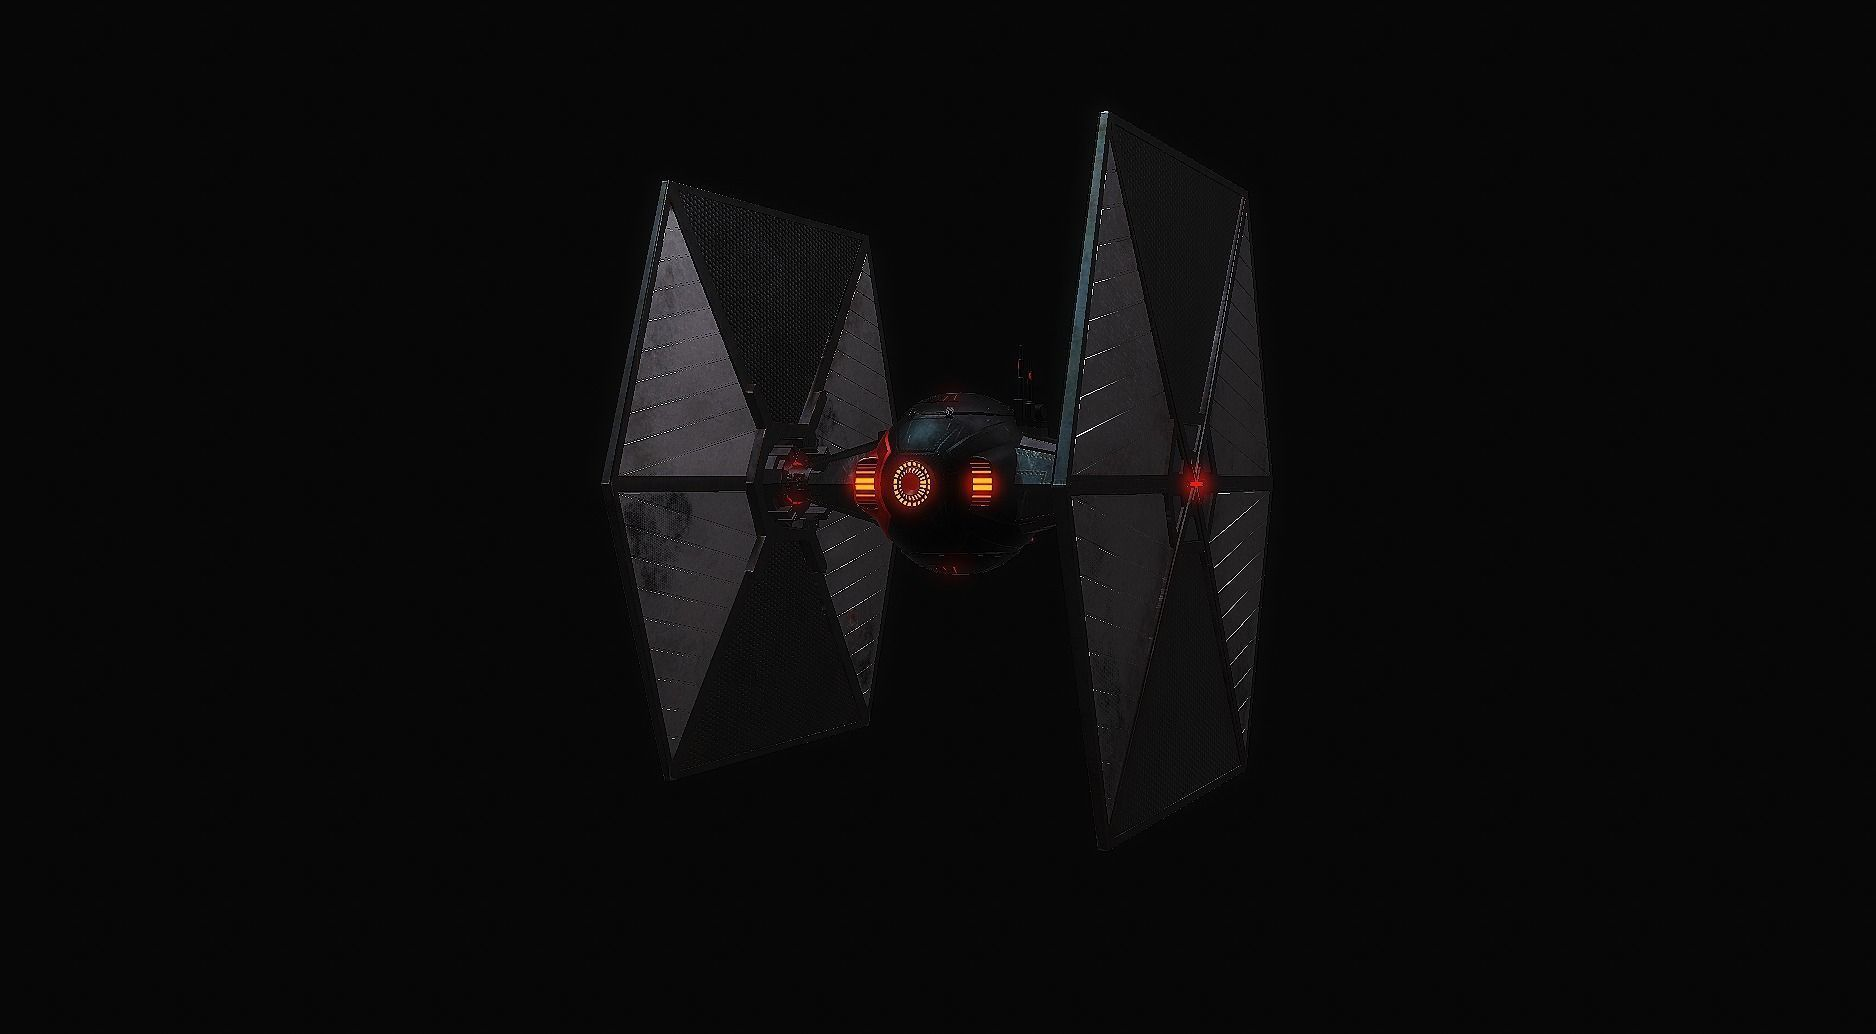 Black Tie Fighter